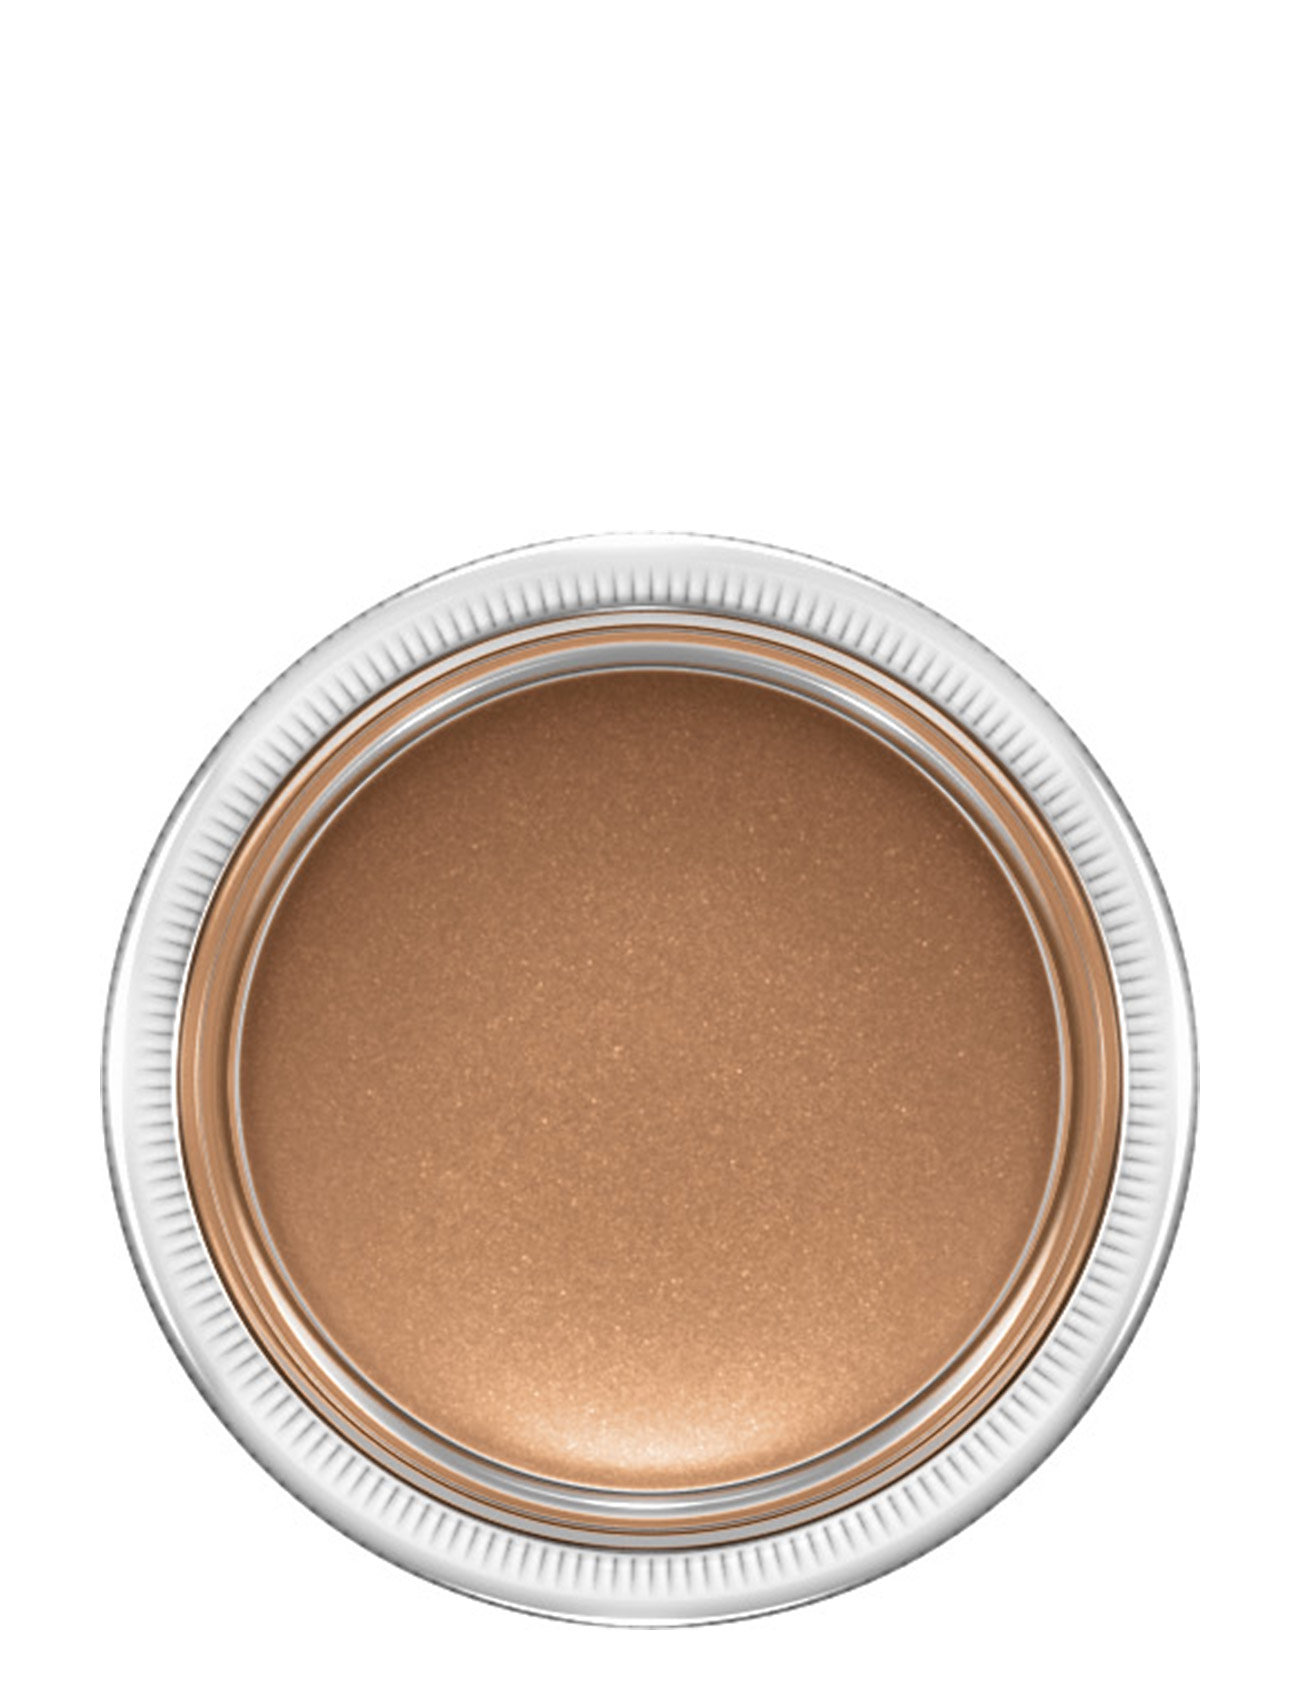 M.A.C. PRO LONGWEAR PAINT POT INDIANWOOD